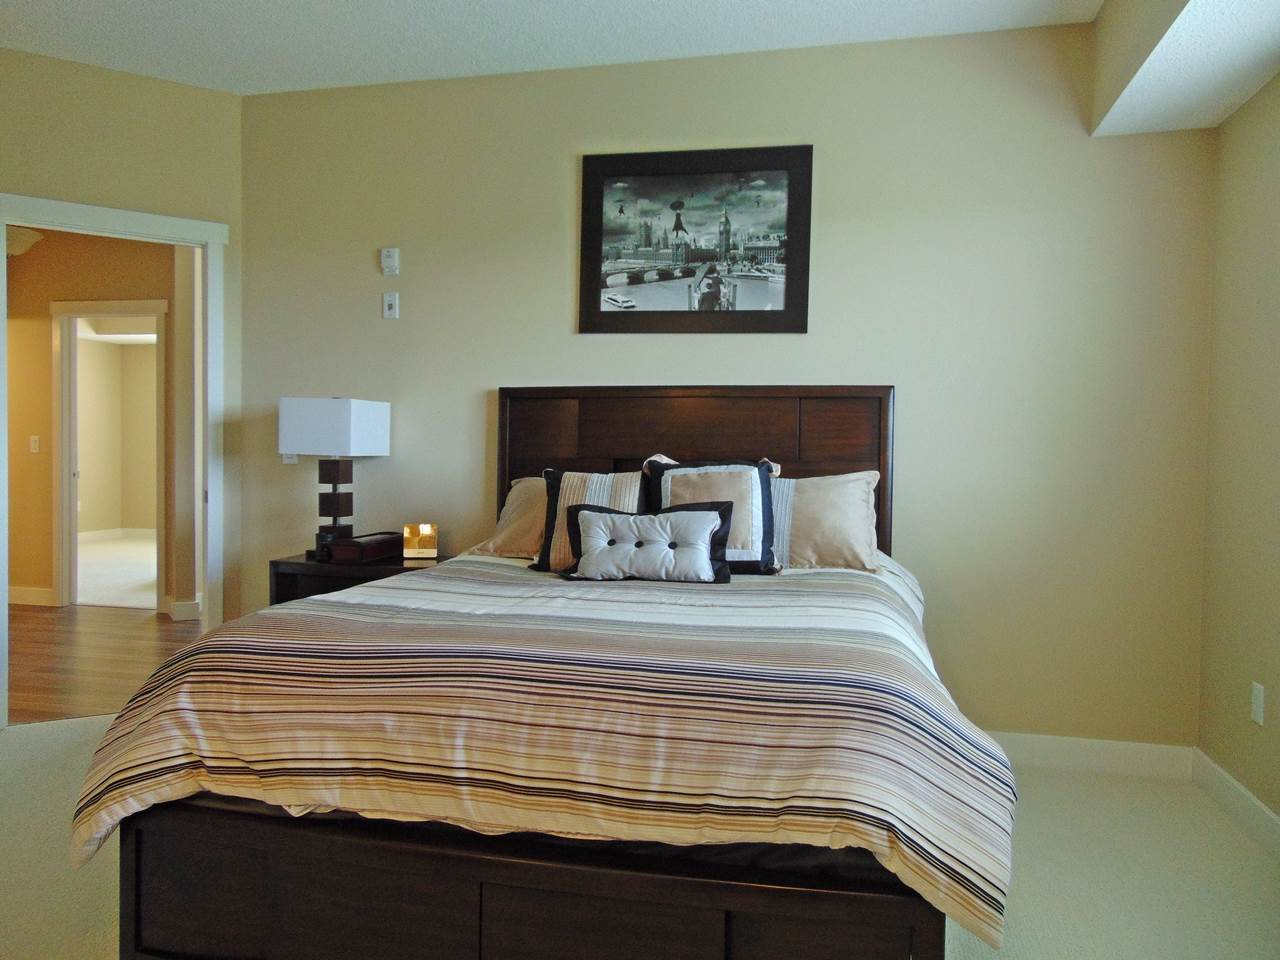 Photo 18: 203 4922 52 Street: Gibbons Condo for sale : MLS® # E4071334